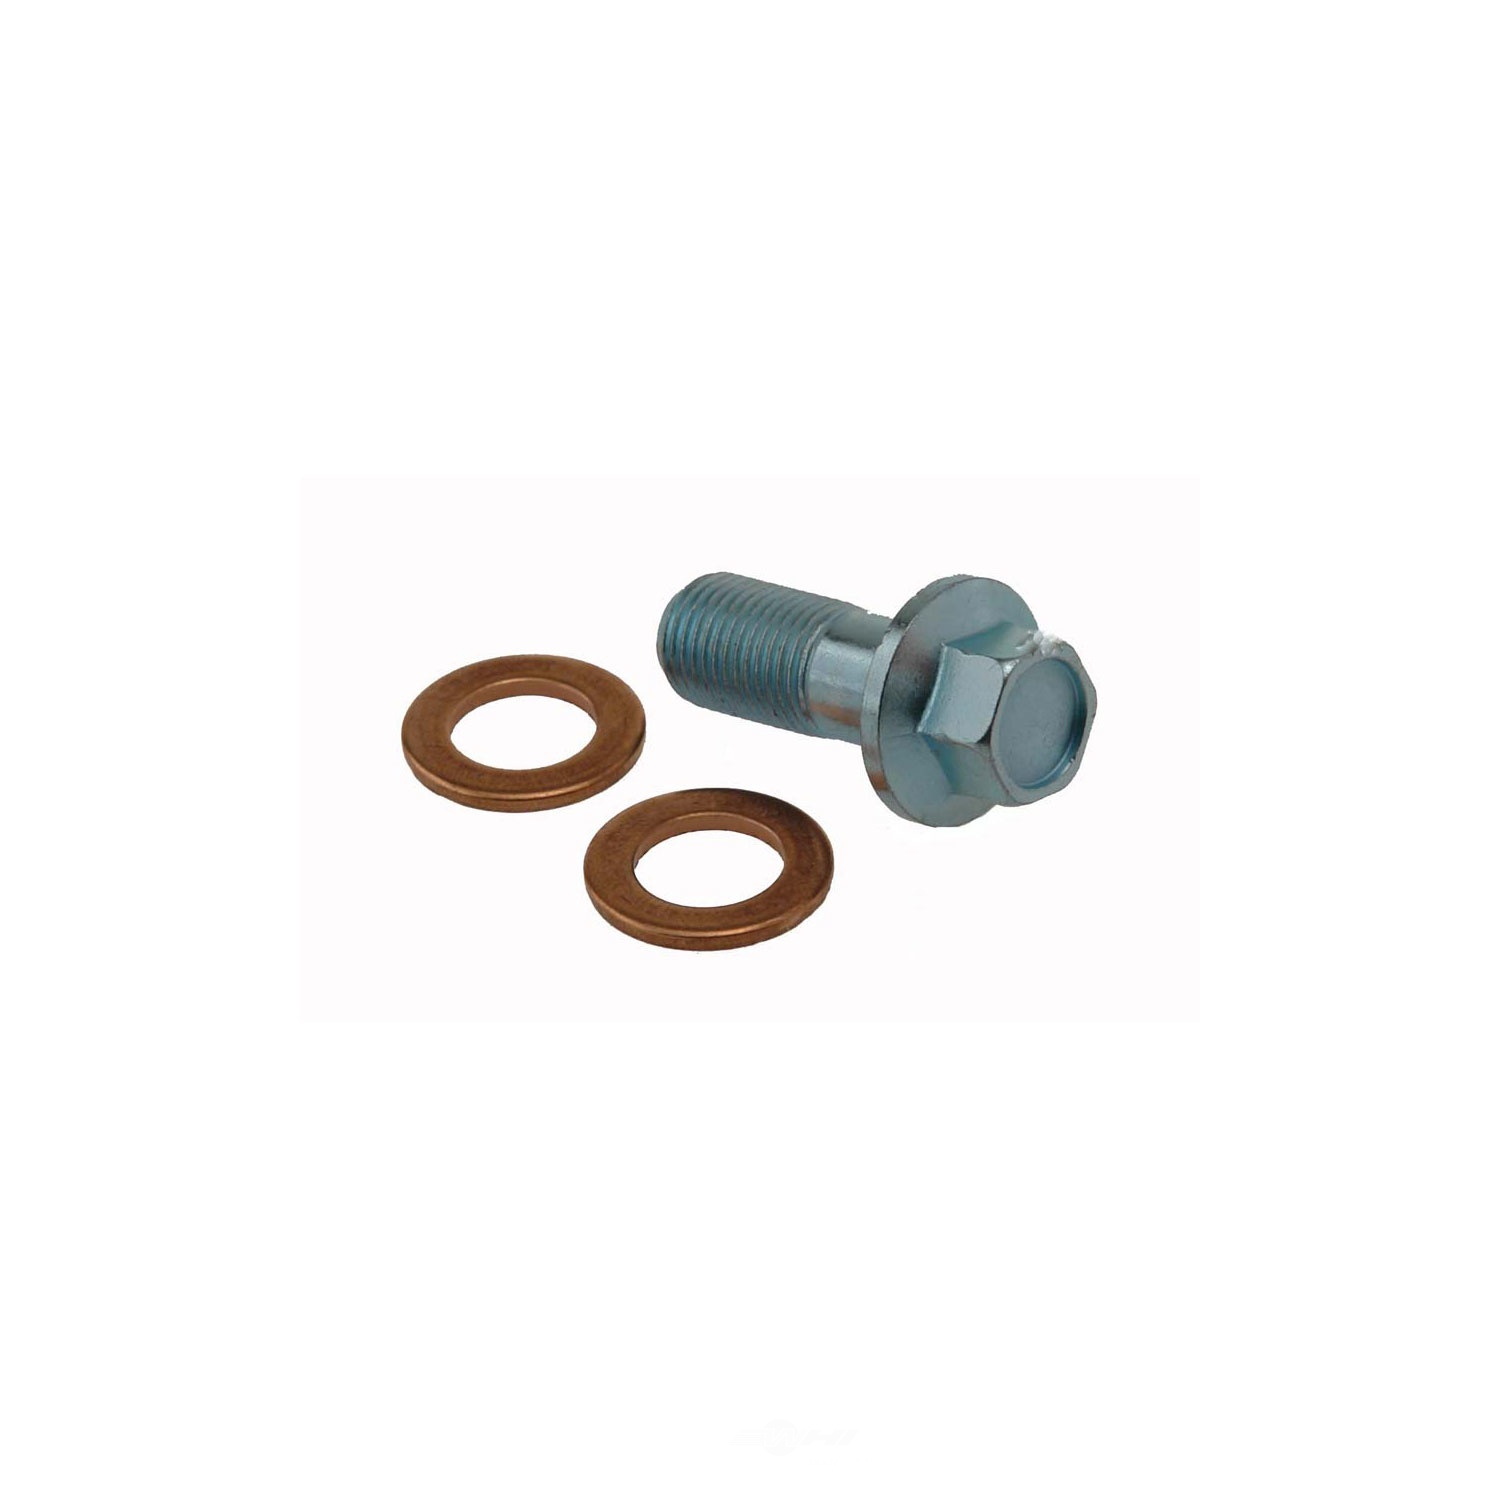 CARLSON QUALITY BRAKE PARTS - Brake Hydraulic Banjo Bolt (Rear) - CRL H9477-2